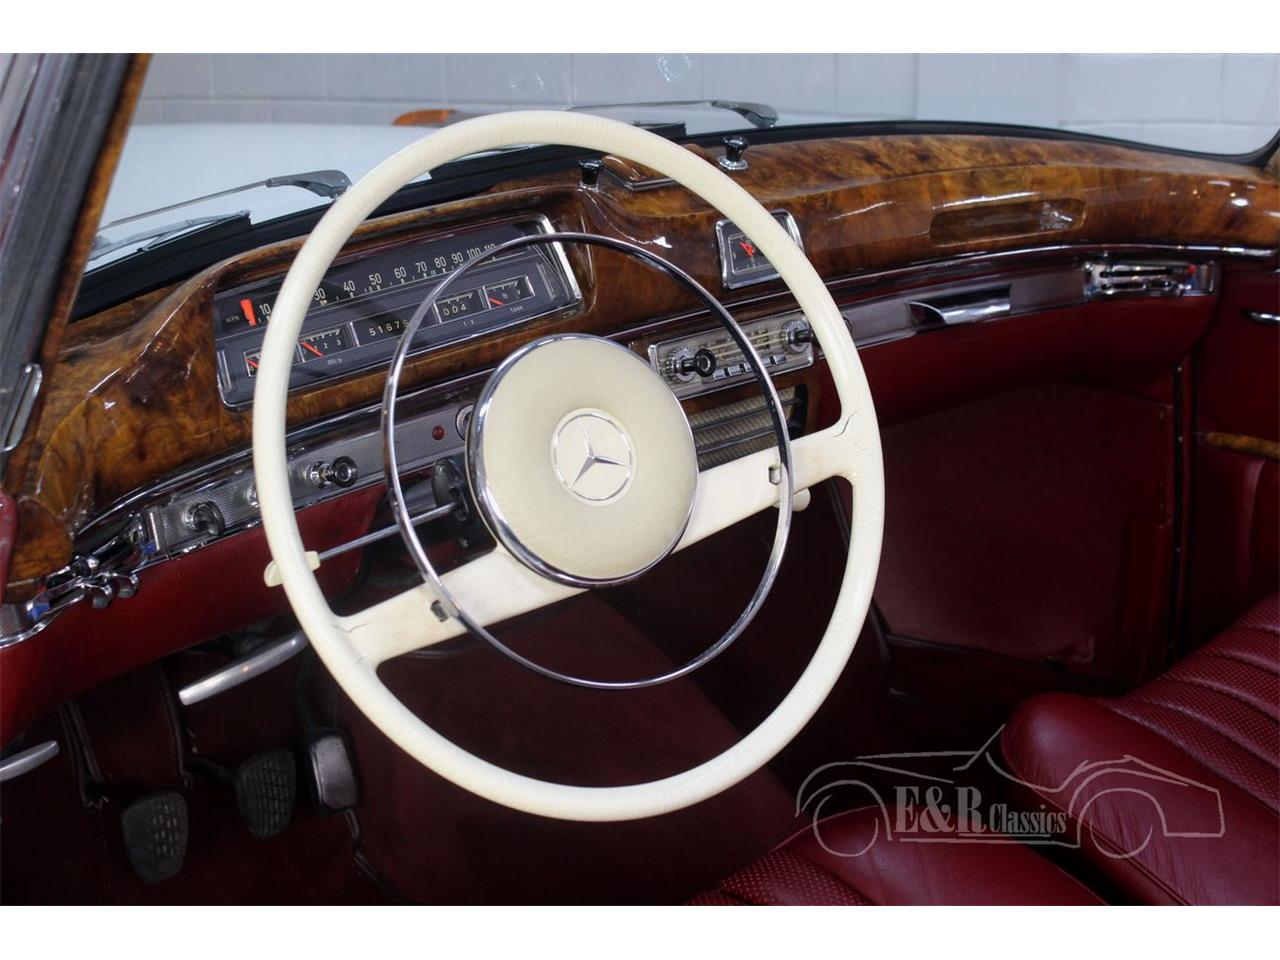 Large Picture of '60 Mercedes-Benz 220SE located in Waalwijk noord brabant - $143,800.00 - R1DL